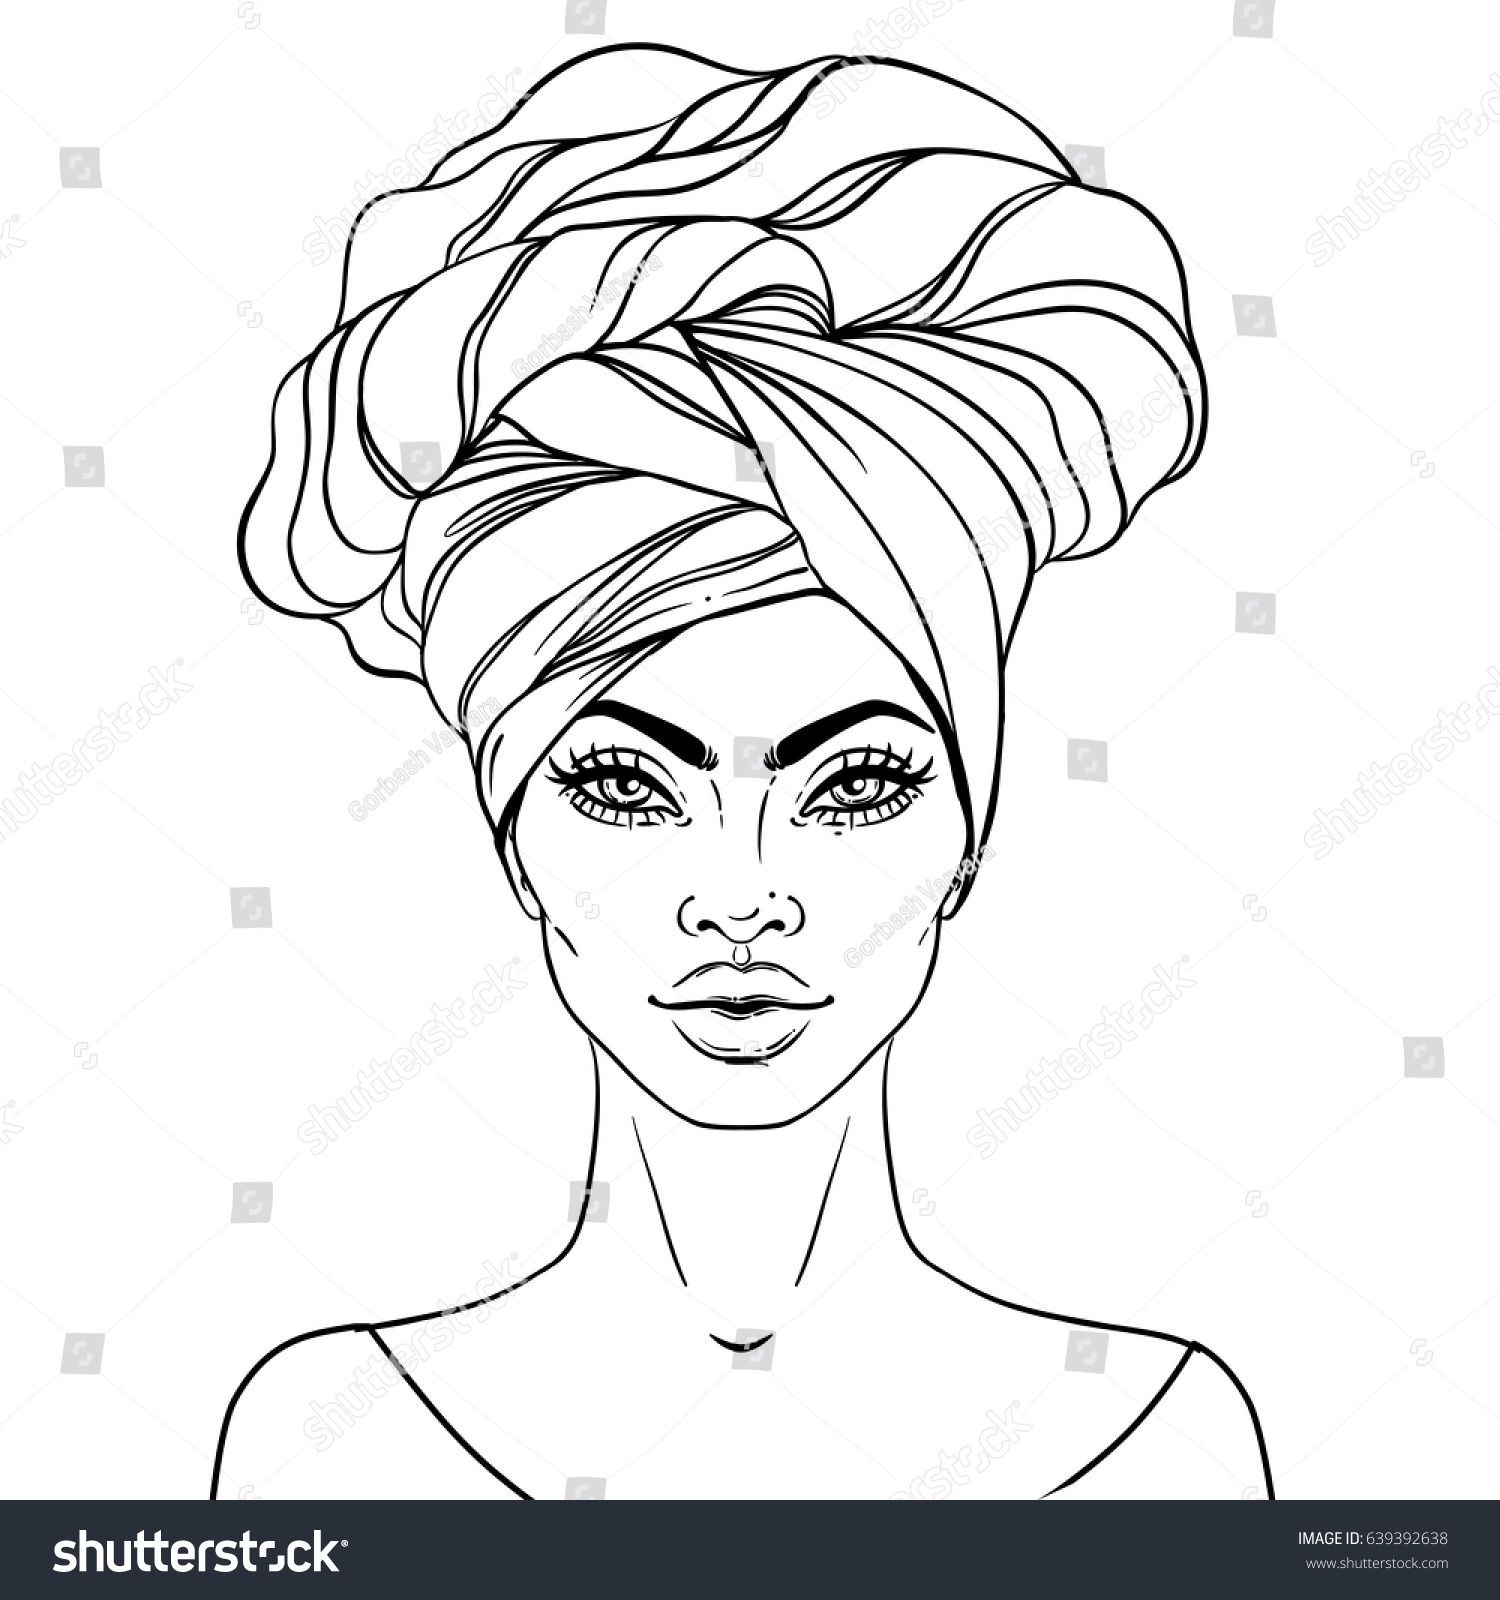 African American Pretty Girl Vector Illustration Of Black Woman With Glossy Lips And Turban Great For Avatars Illustration Coloring Books Art Coloring Pages